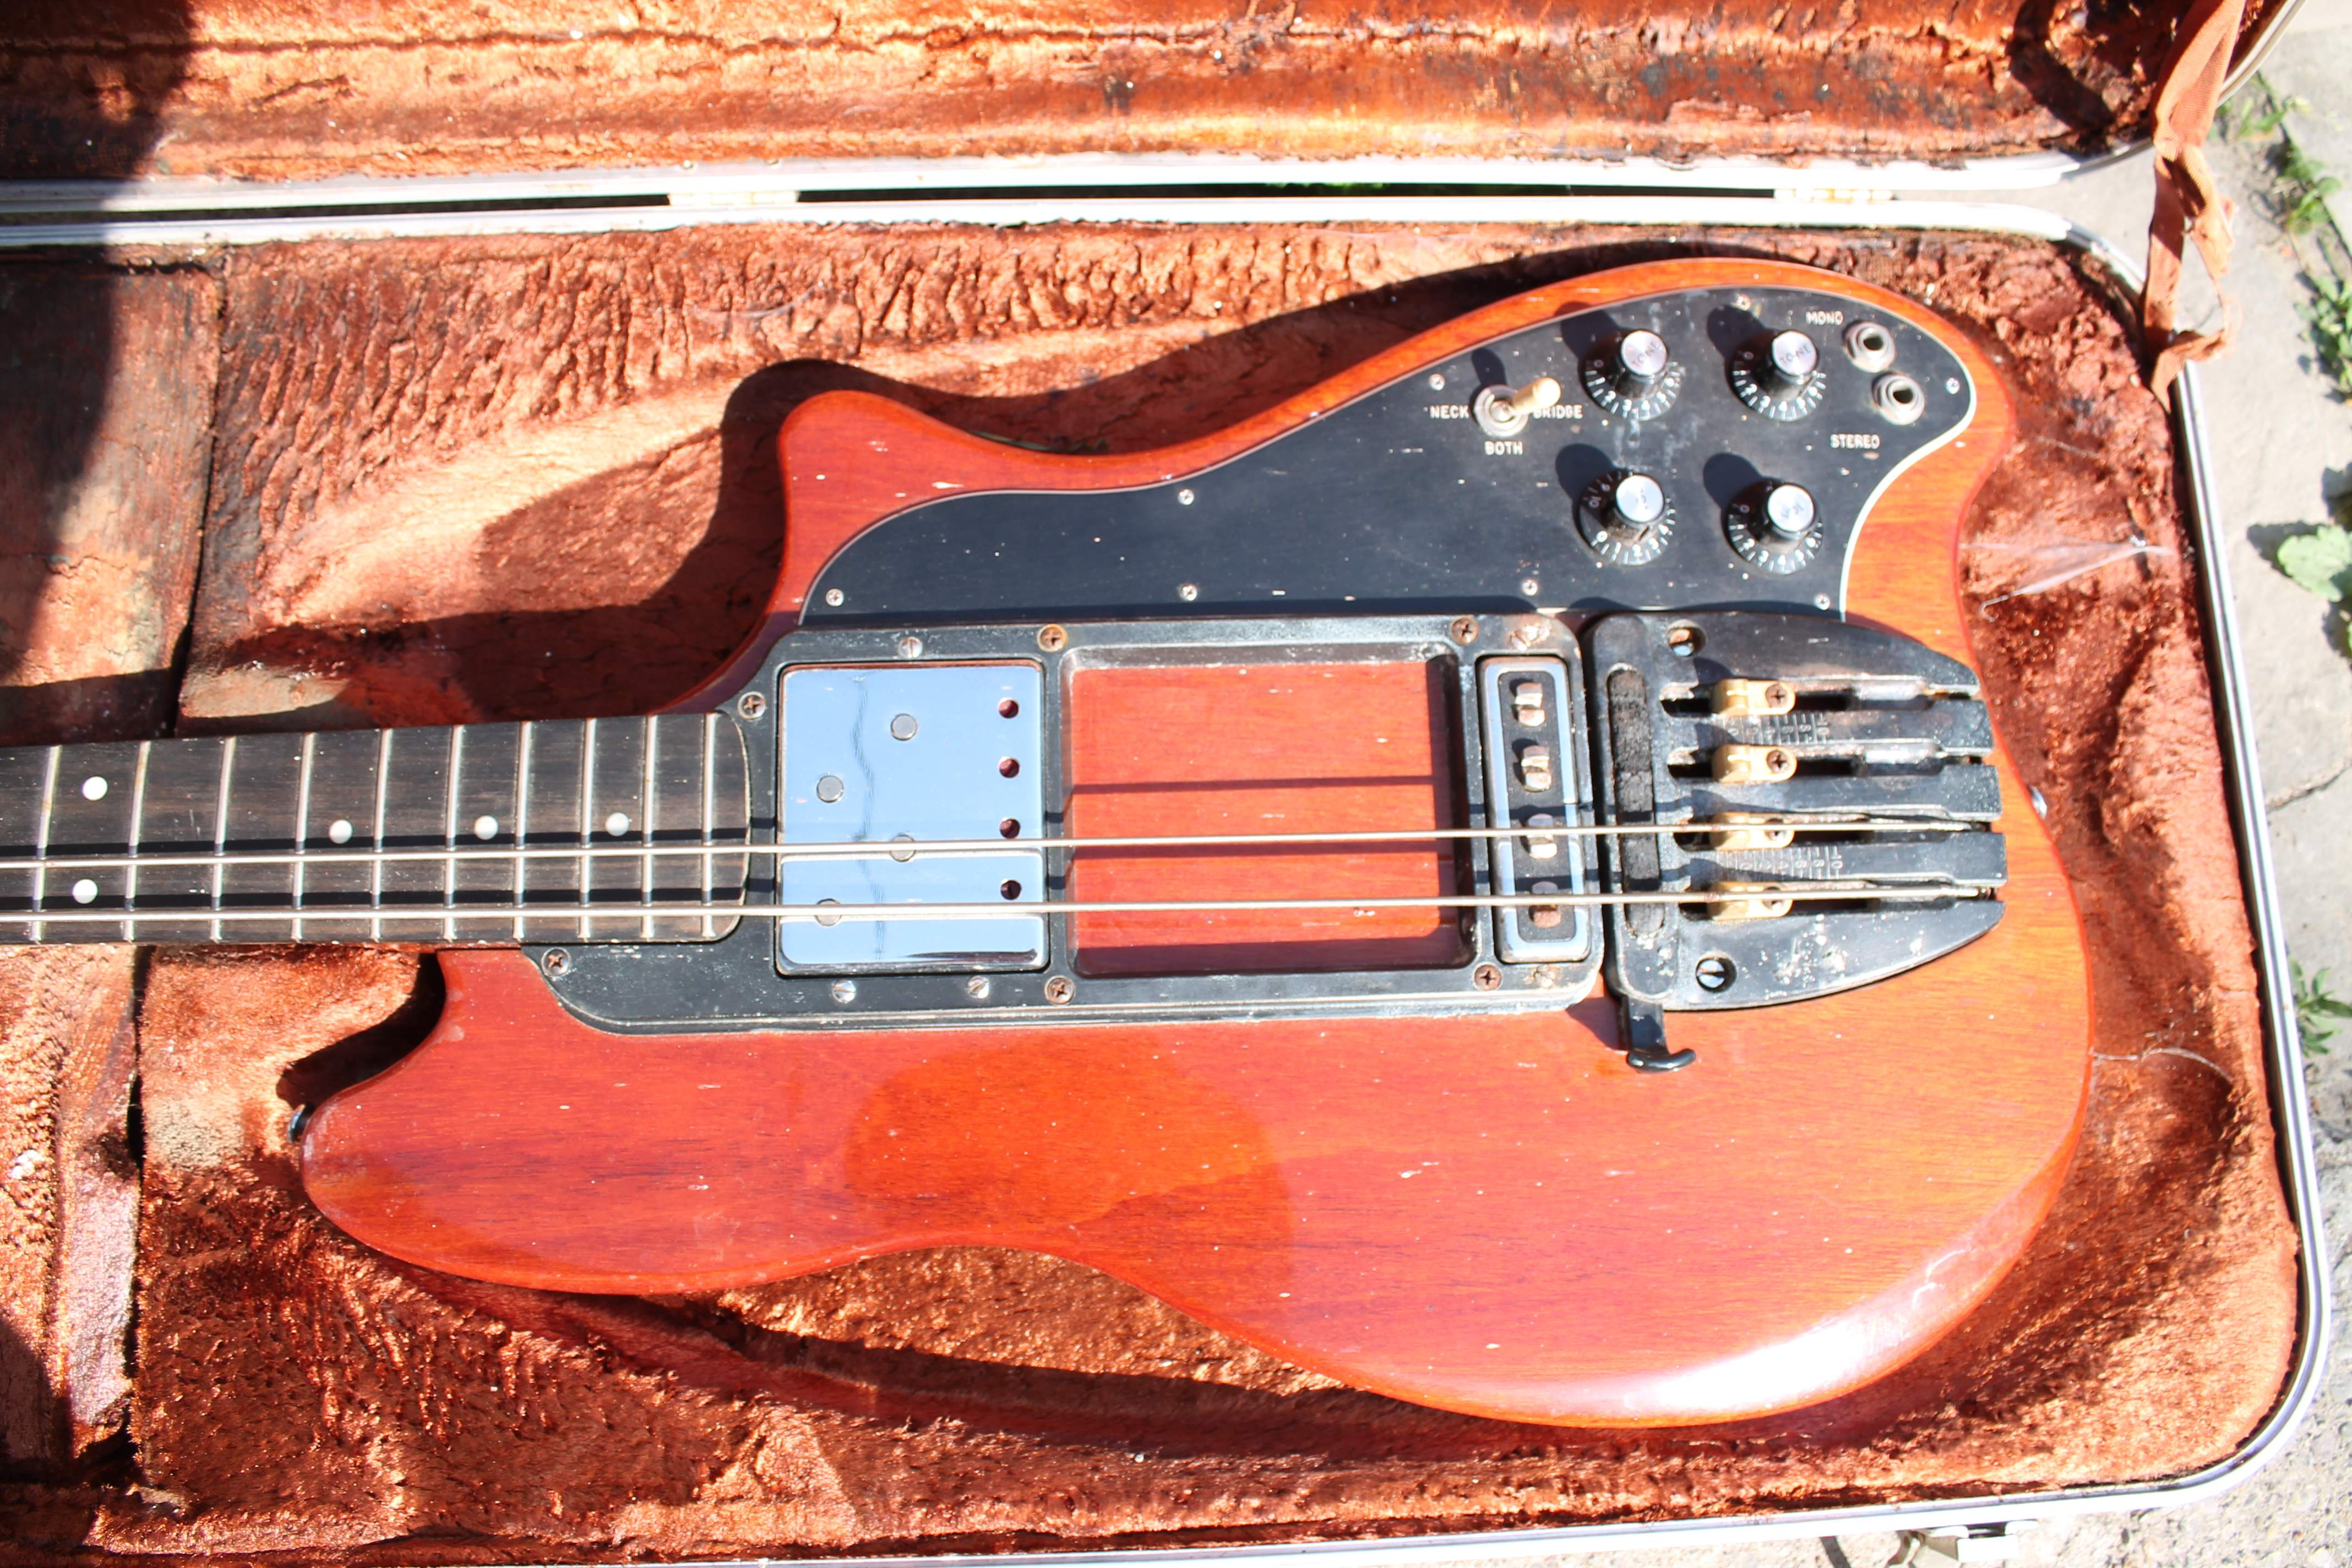 Ovation celebrity guitar serial numbers